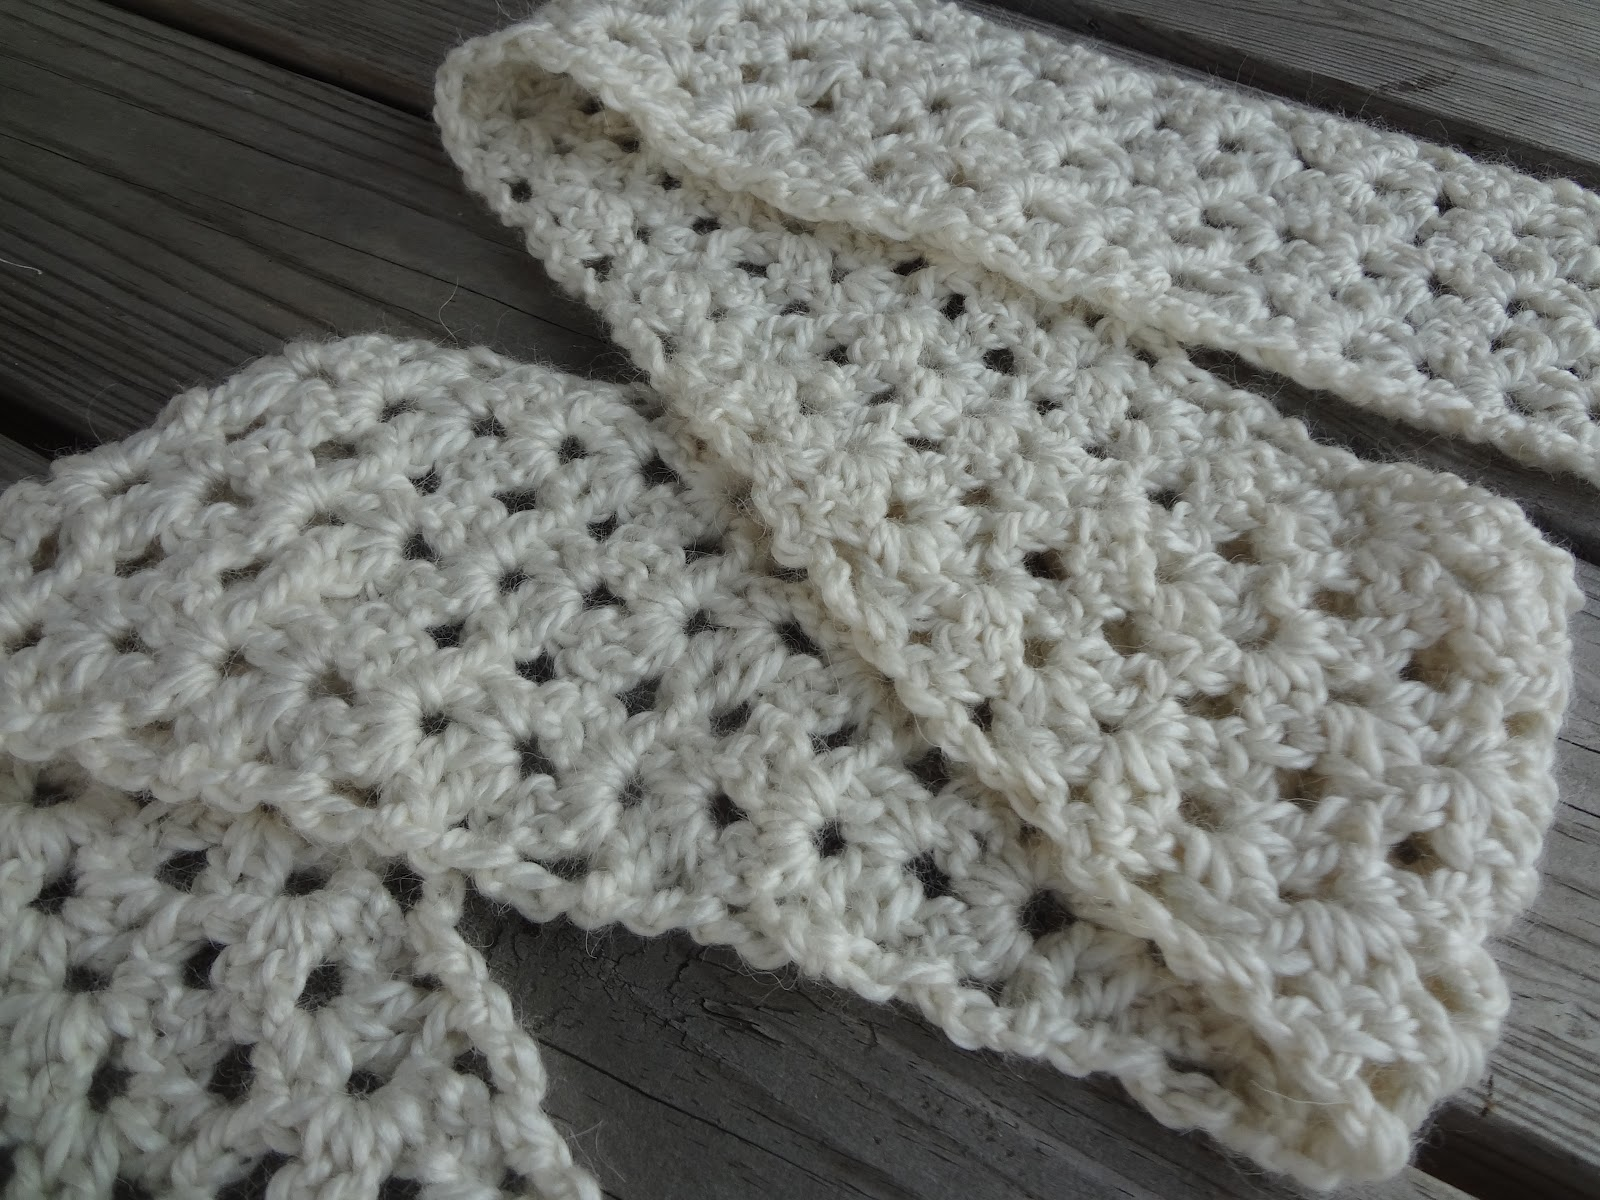 Crochet Beginning Patterns : Fiber Flux: Free Crochet Pattern...Vanilla Bean Scarf!